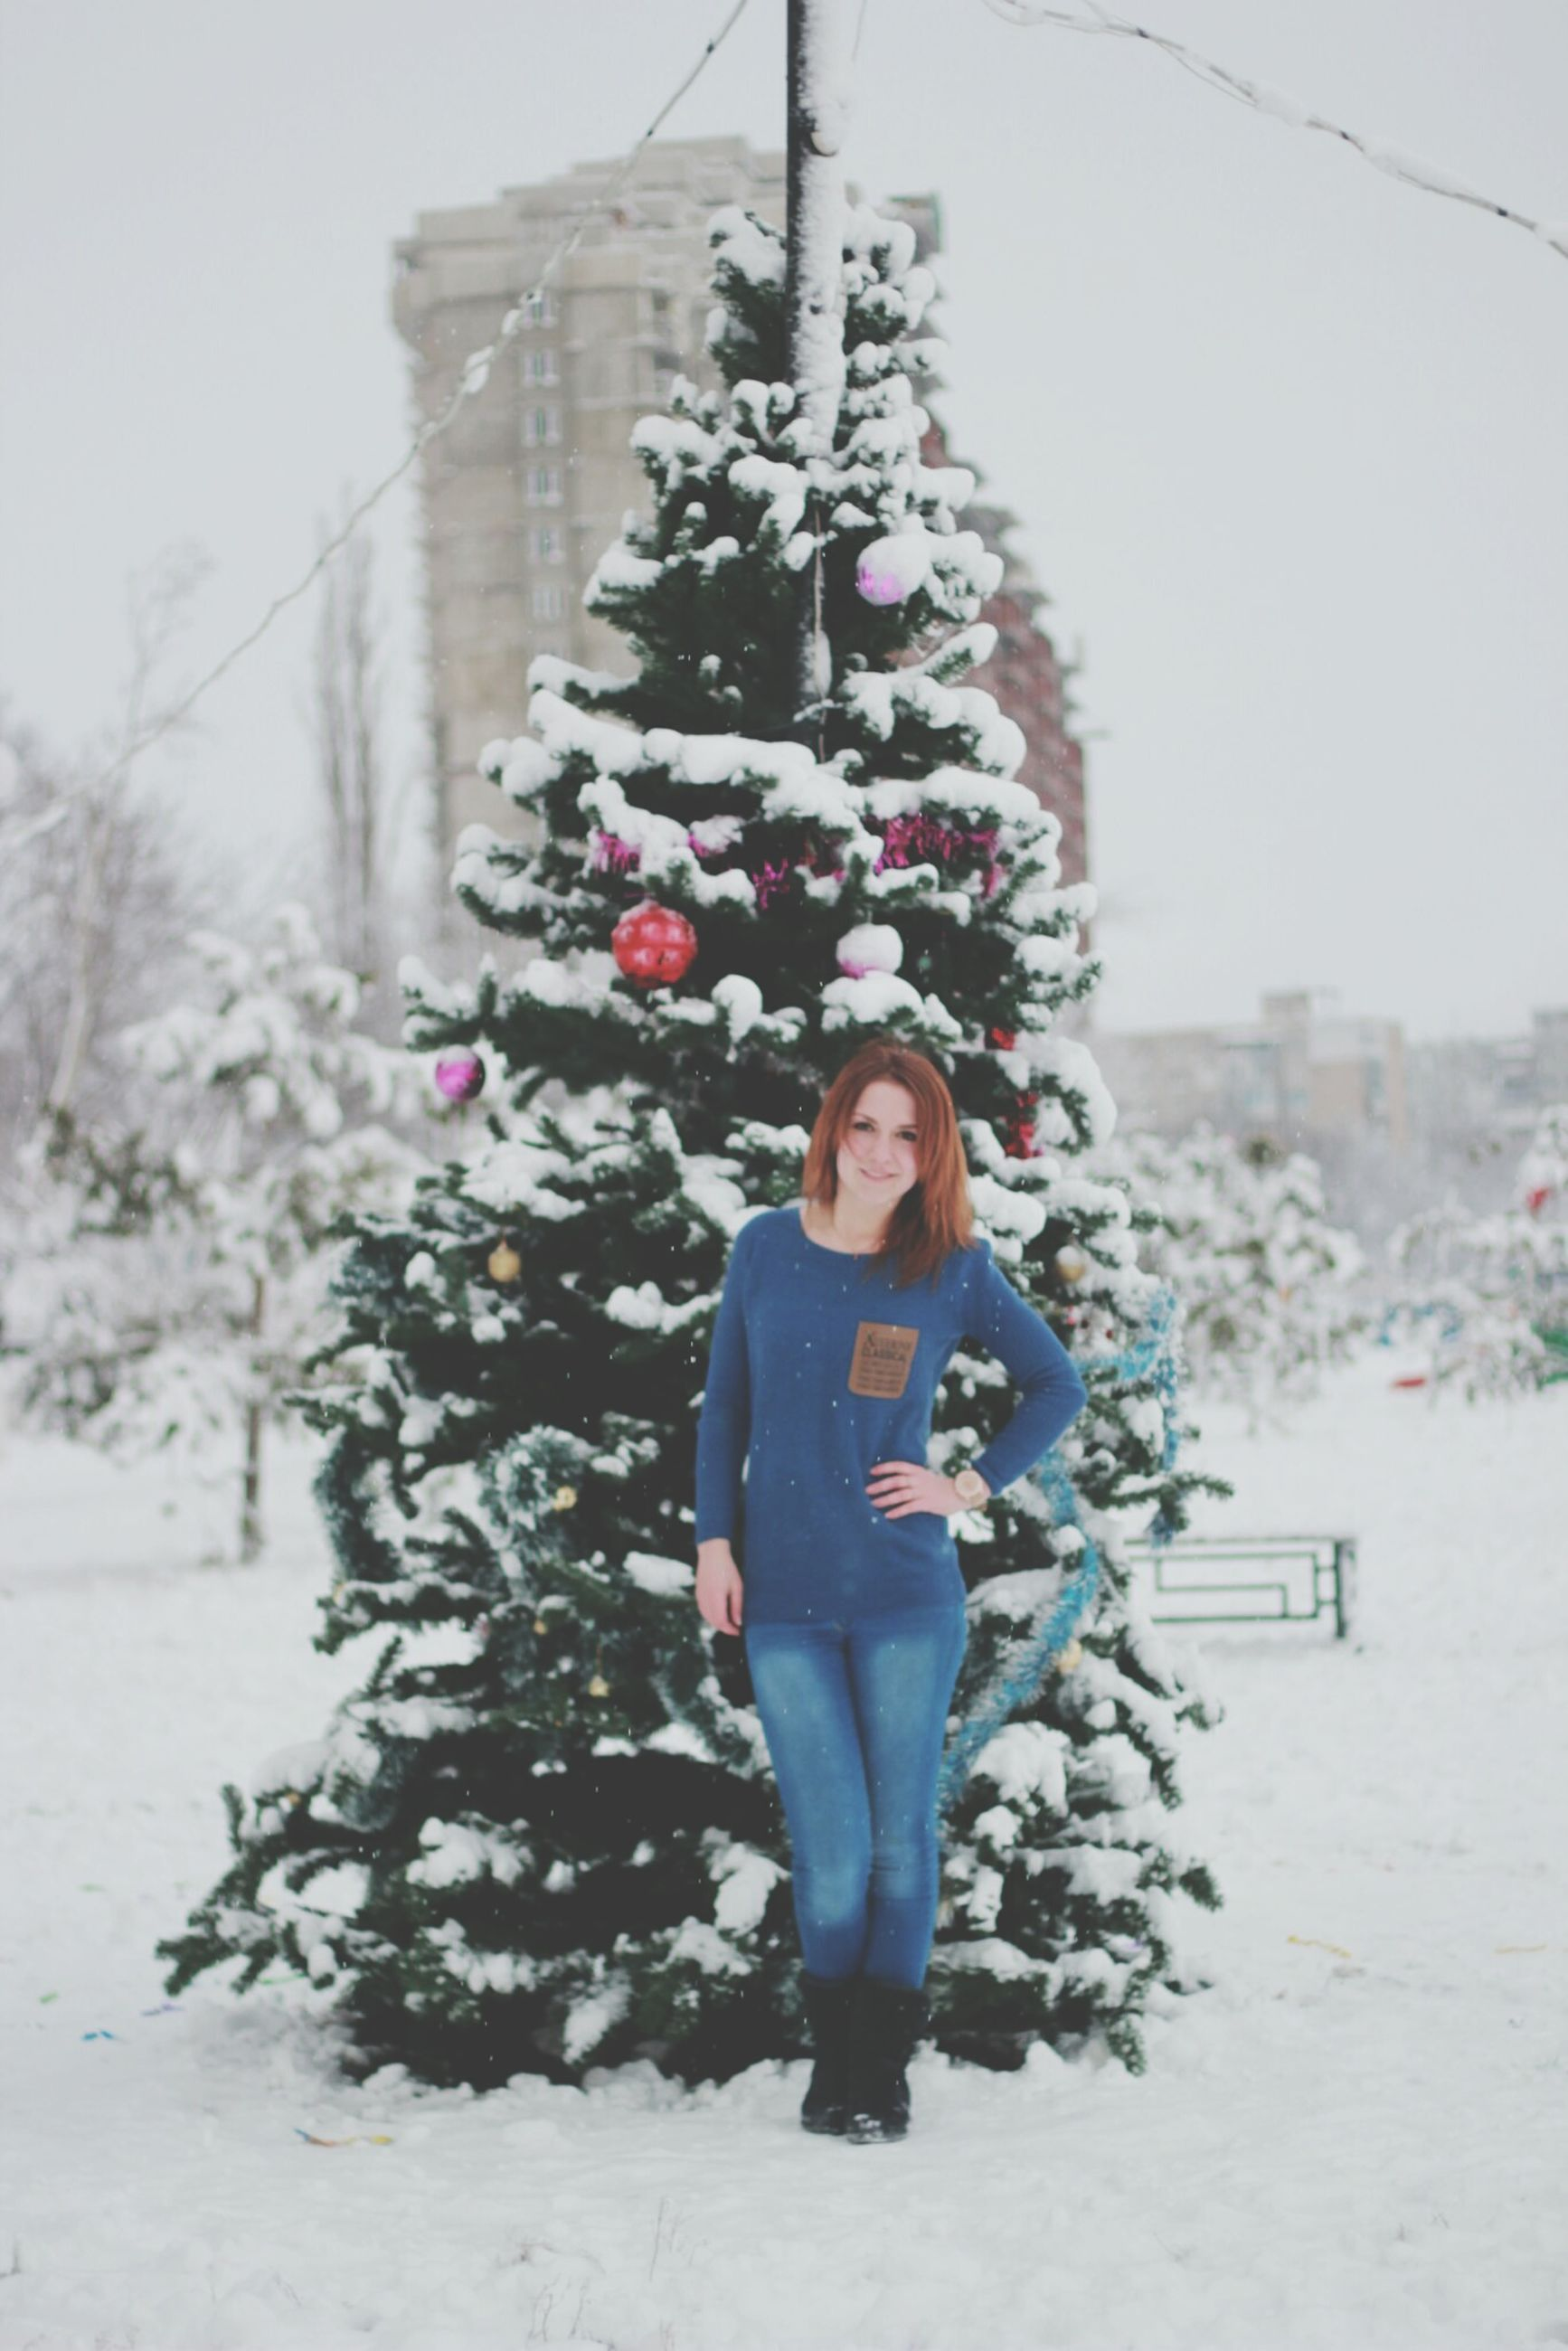 lifestyles, leisure activity, winter, casual clothing, season, snow, warm clothing, cold temperature, person, standing, full length, flower, focus on foreground, front view, building exterior, built structure, day, holding